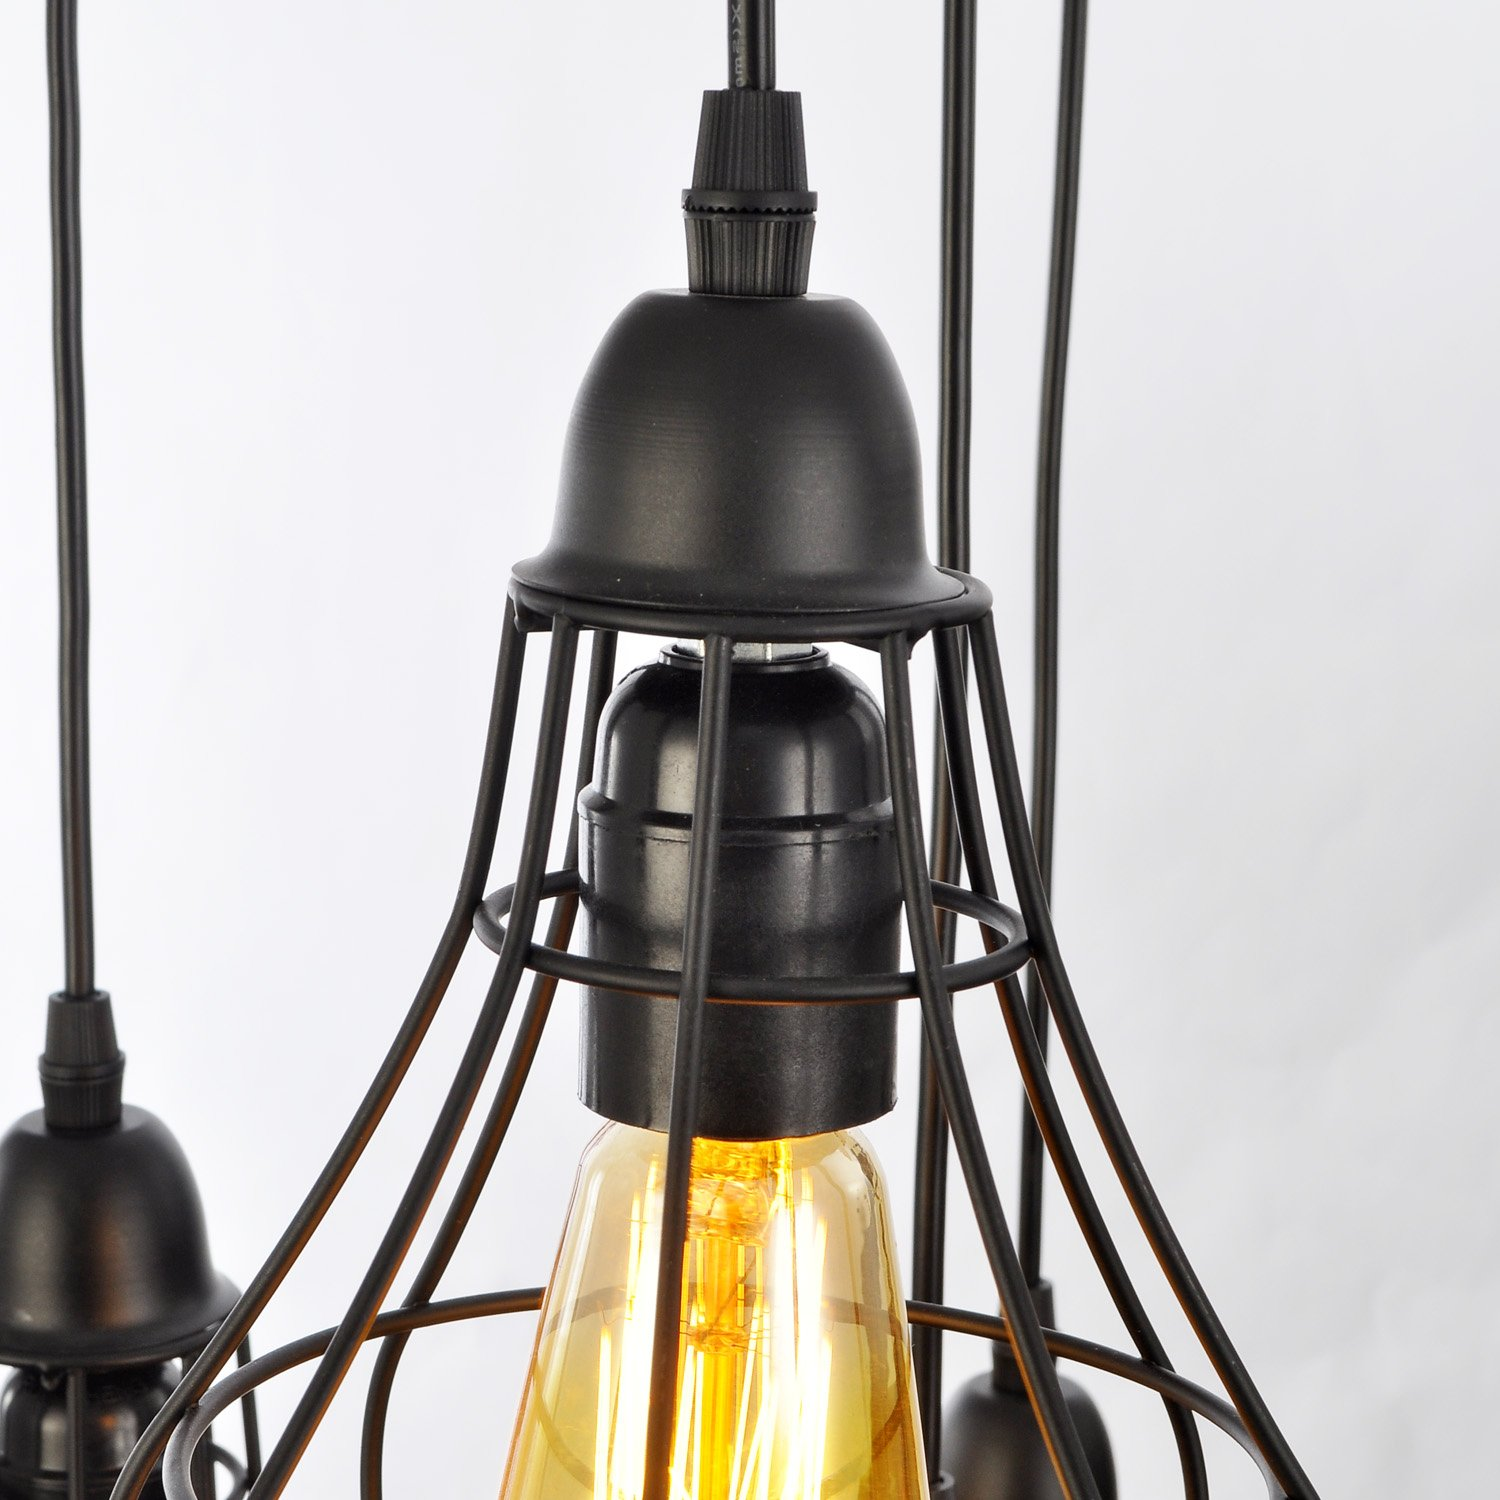 Unitary Brand Rustic Barn Metal Chandelier Max 200w with 5 Lights